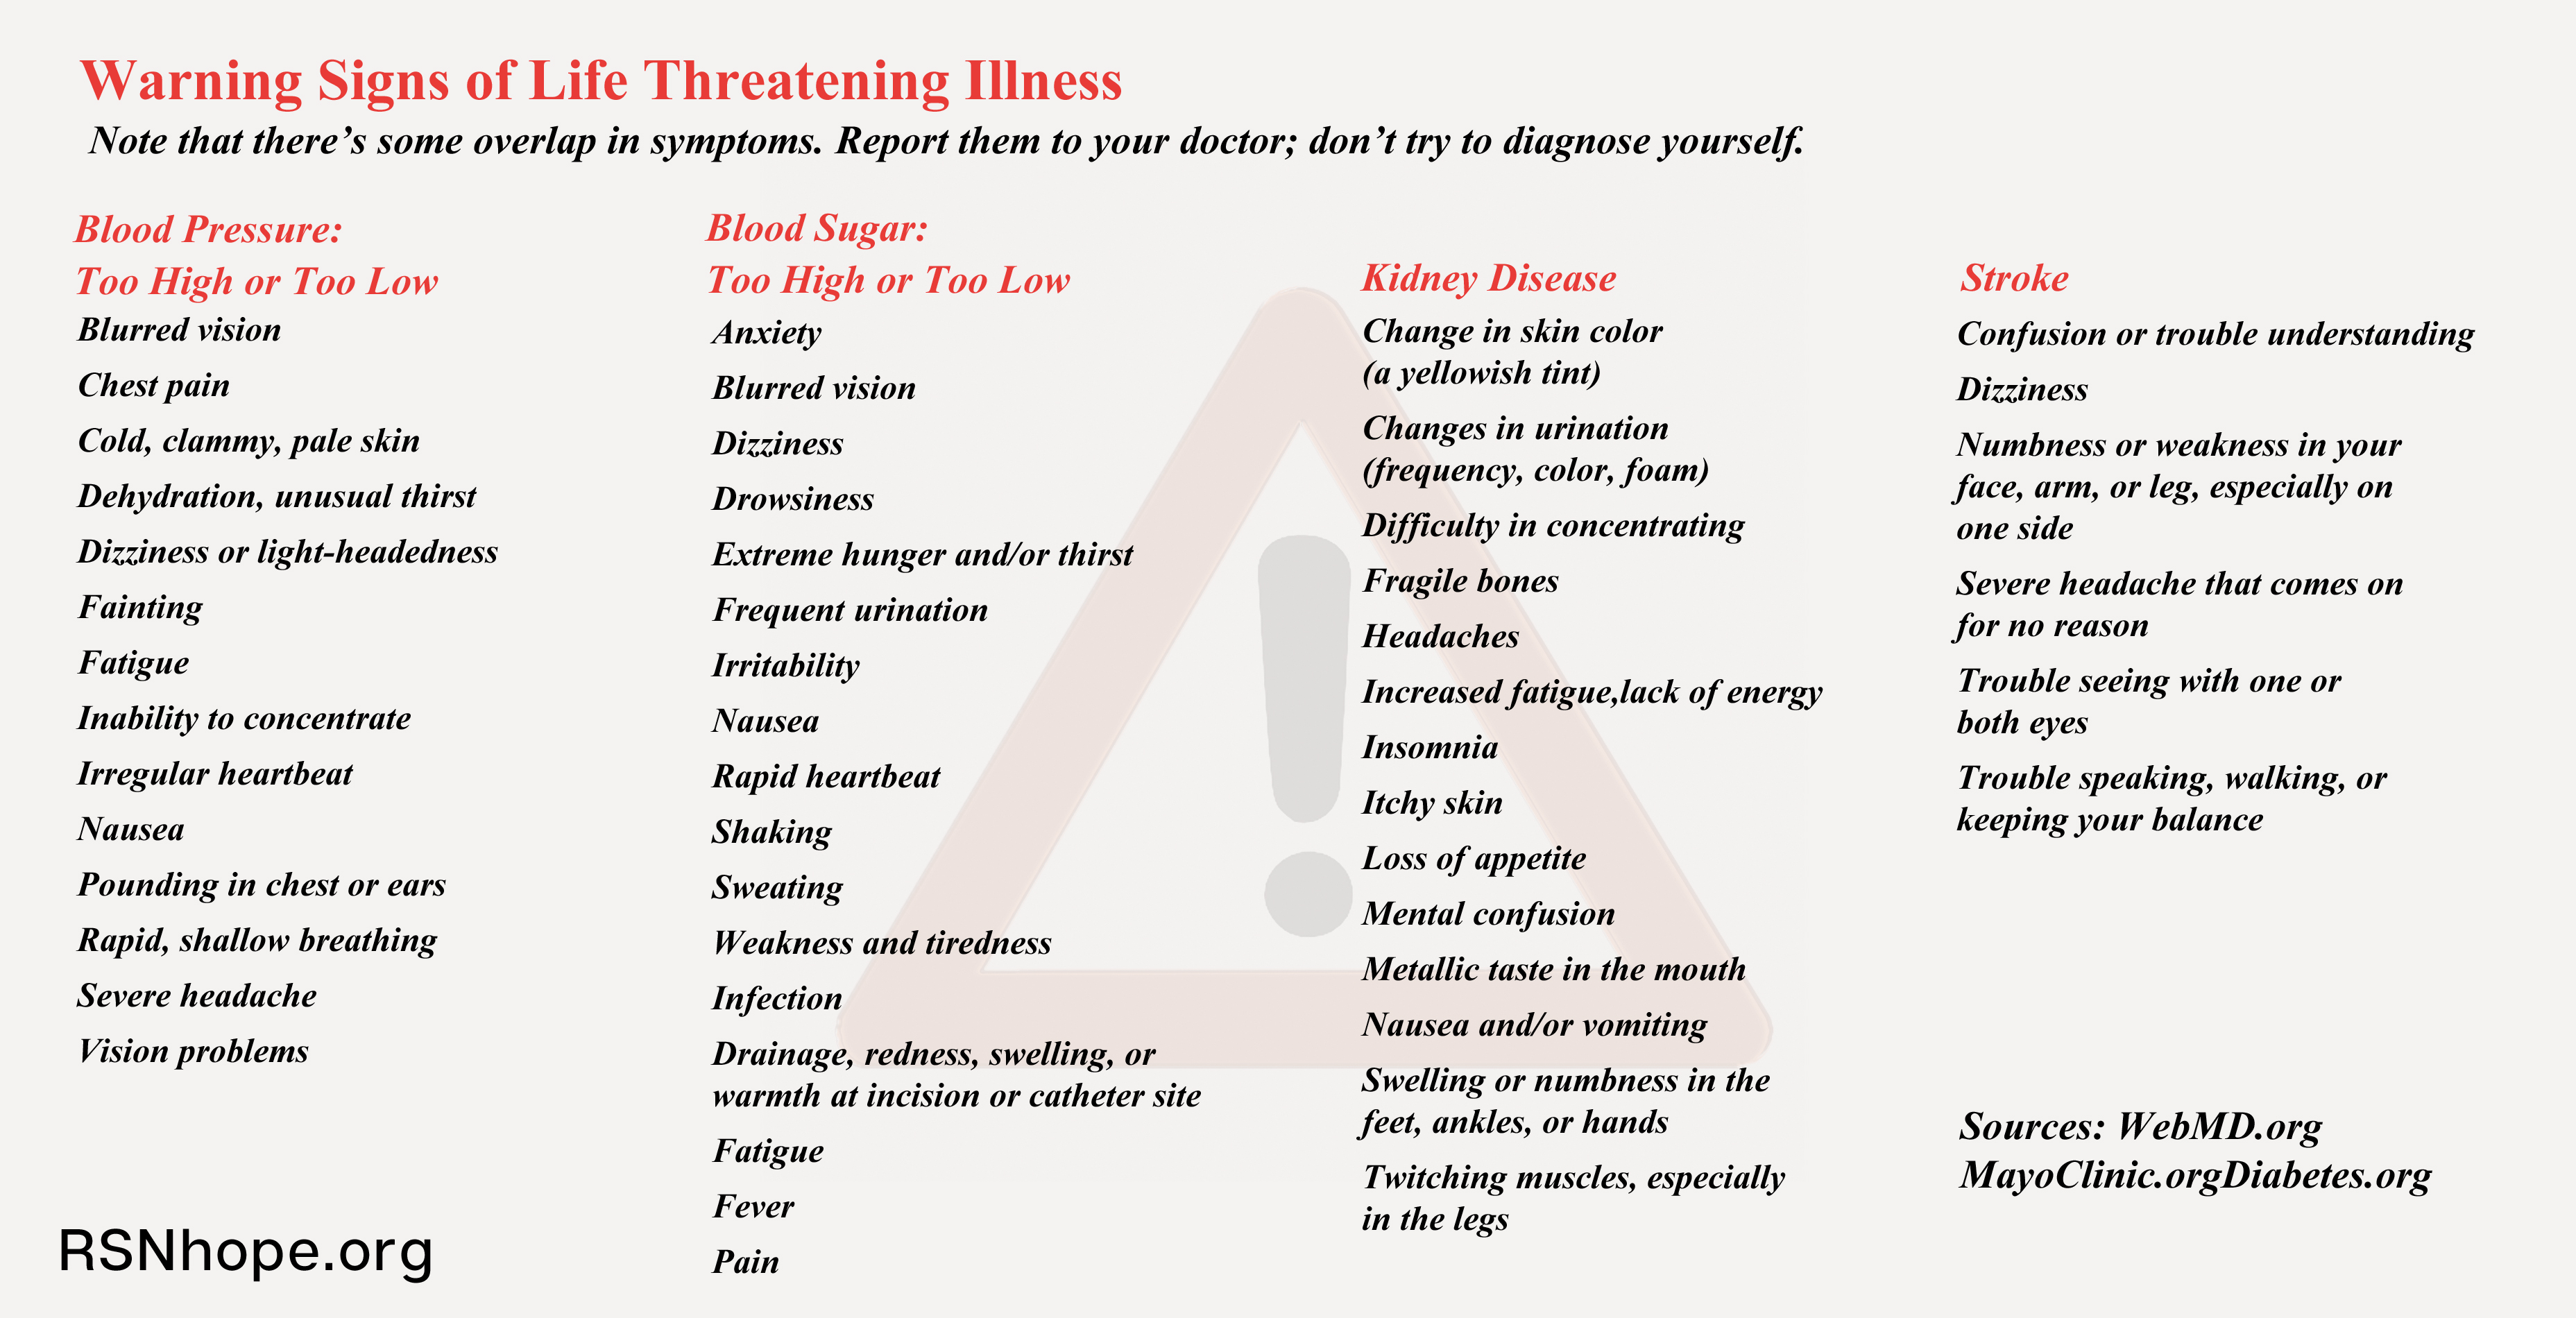 Warning signs of a life threatening illness